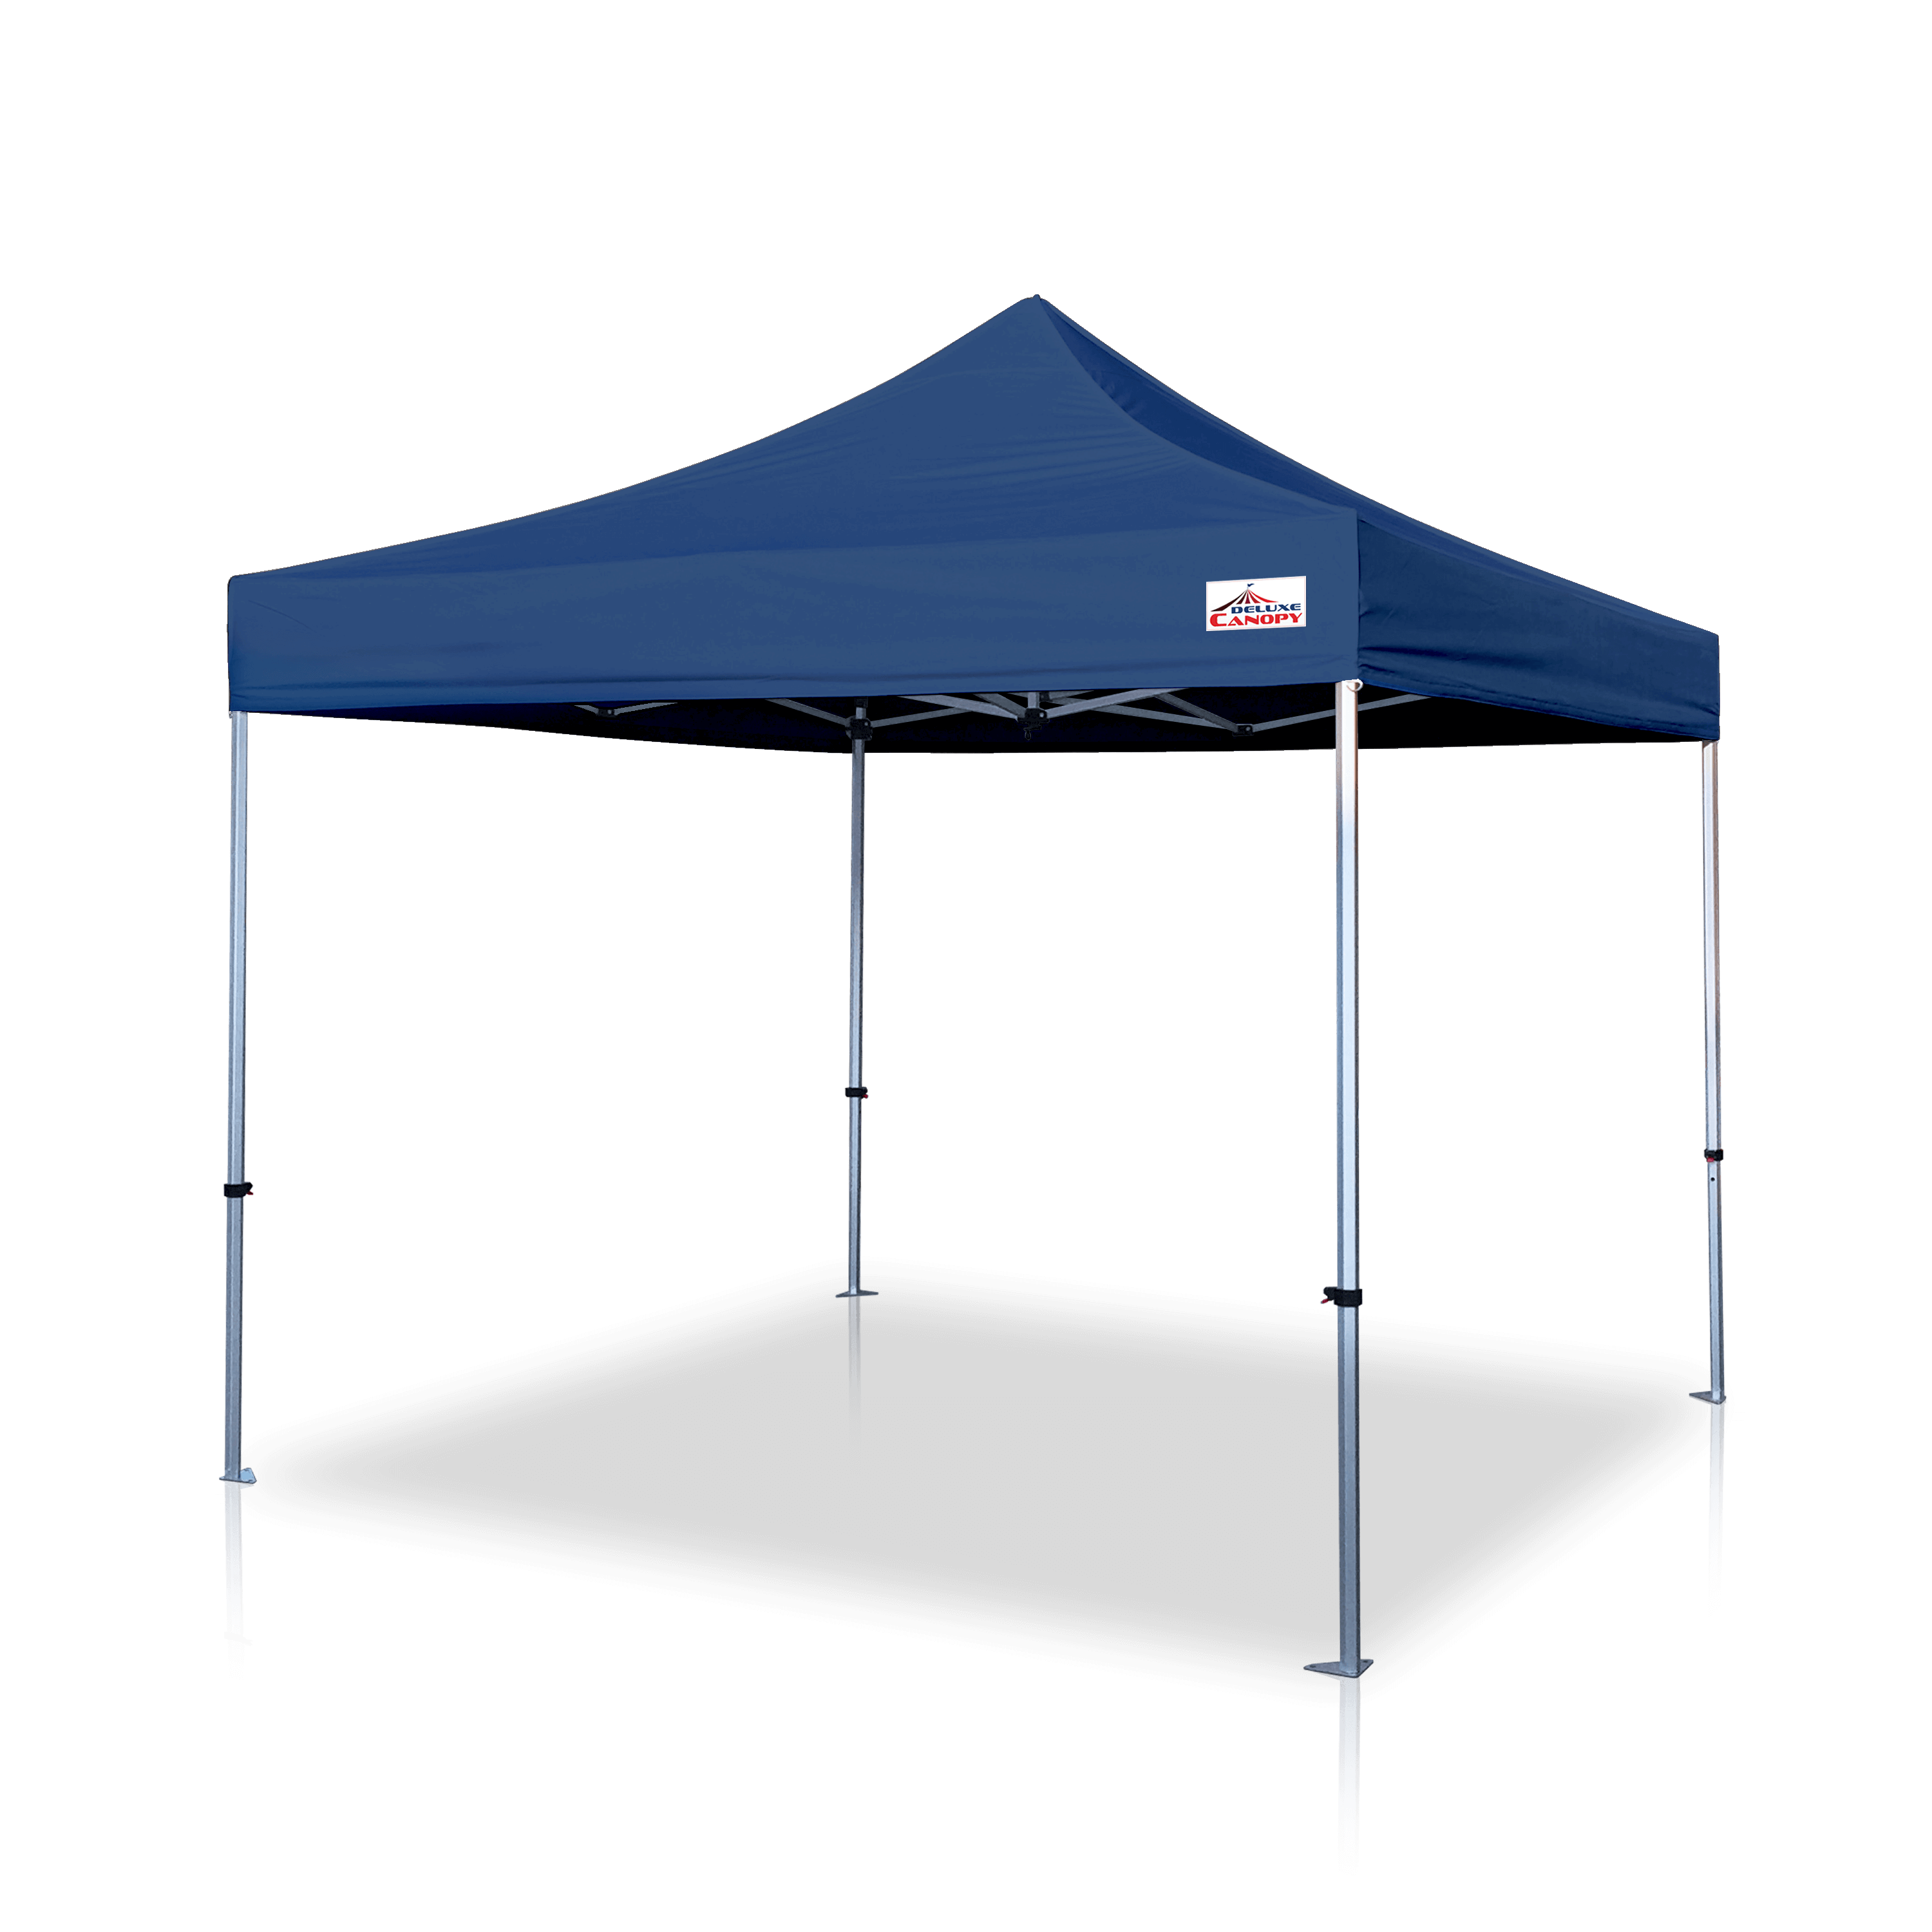 Clipart tent event tent. Custom tents canopies feather